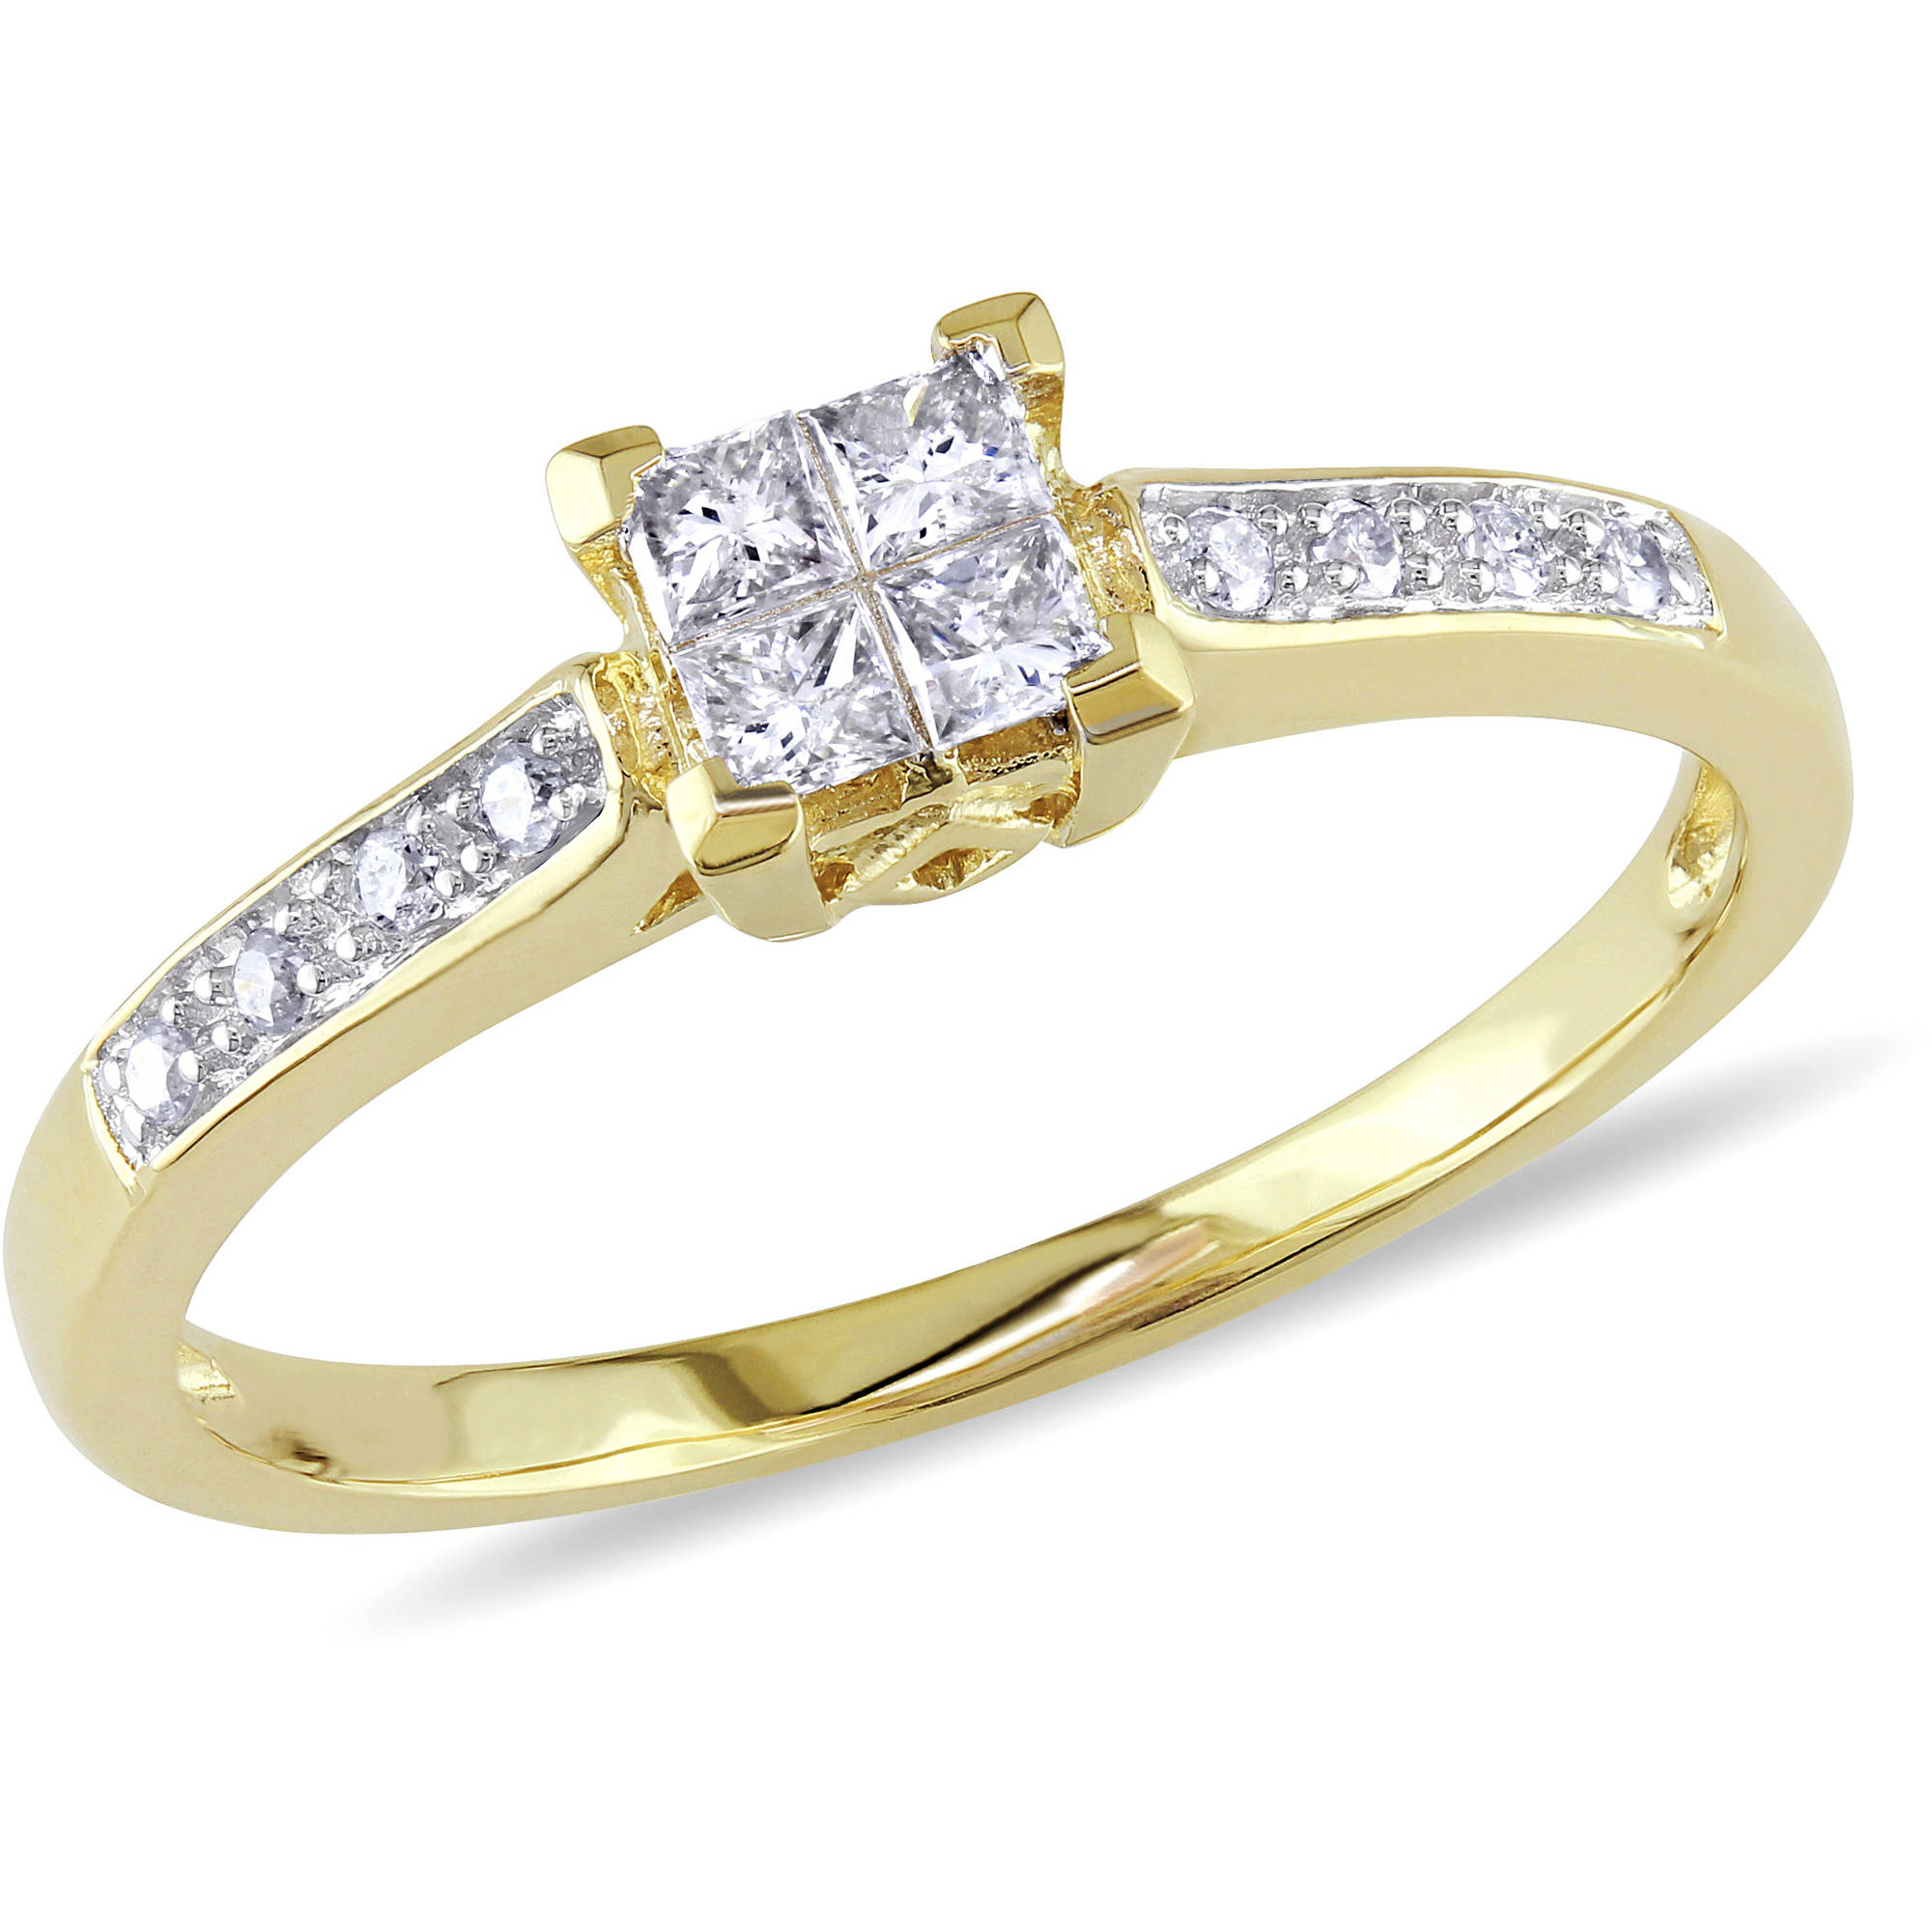 Miabella 1 4 Carat T W Princess Cut Diamond 10kt Yellow Gold